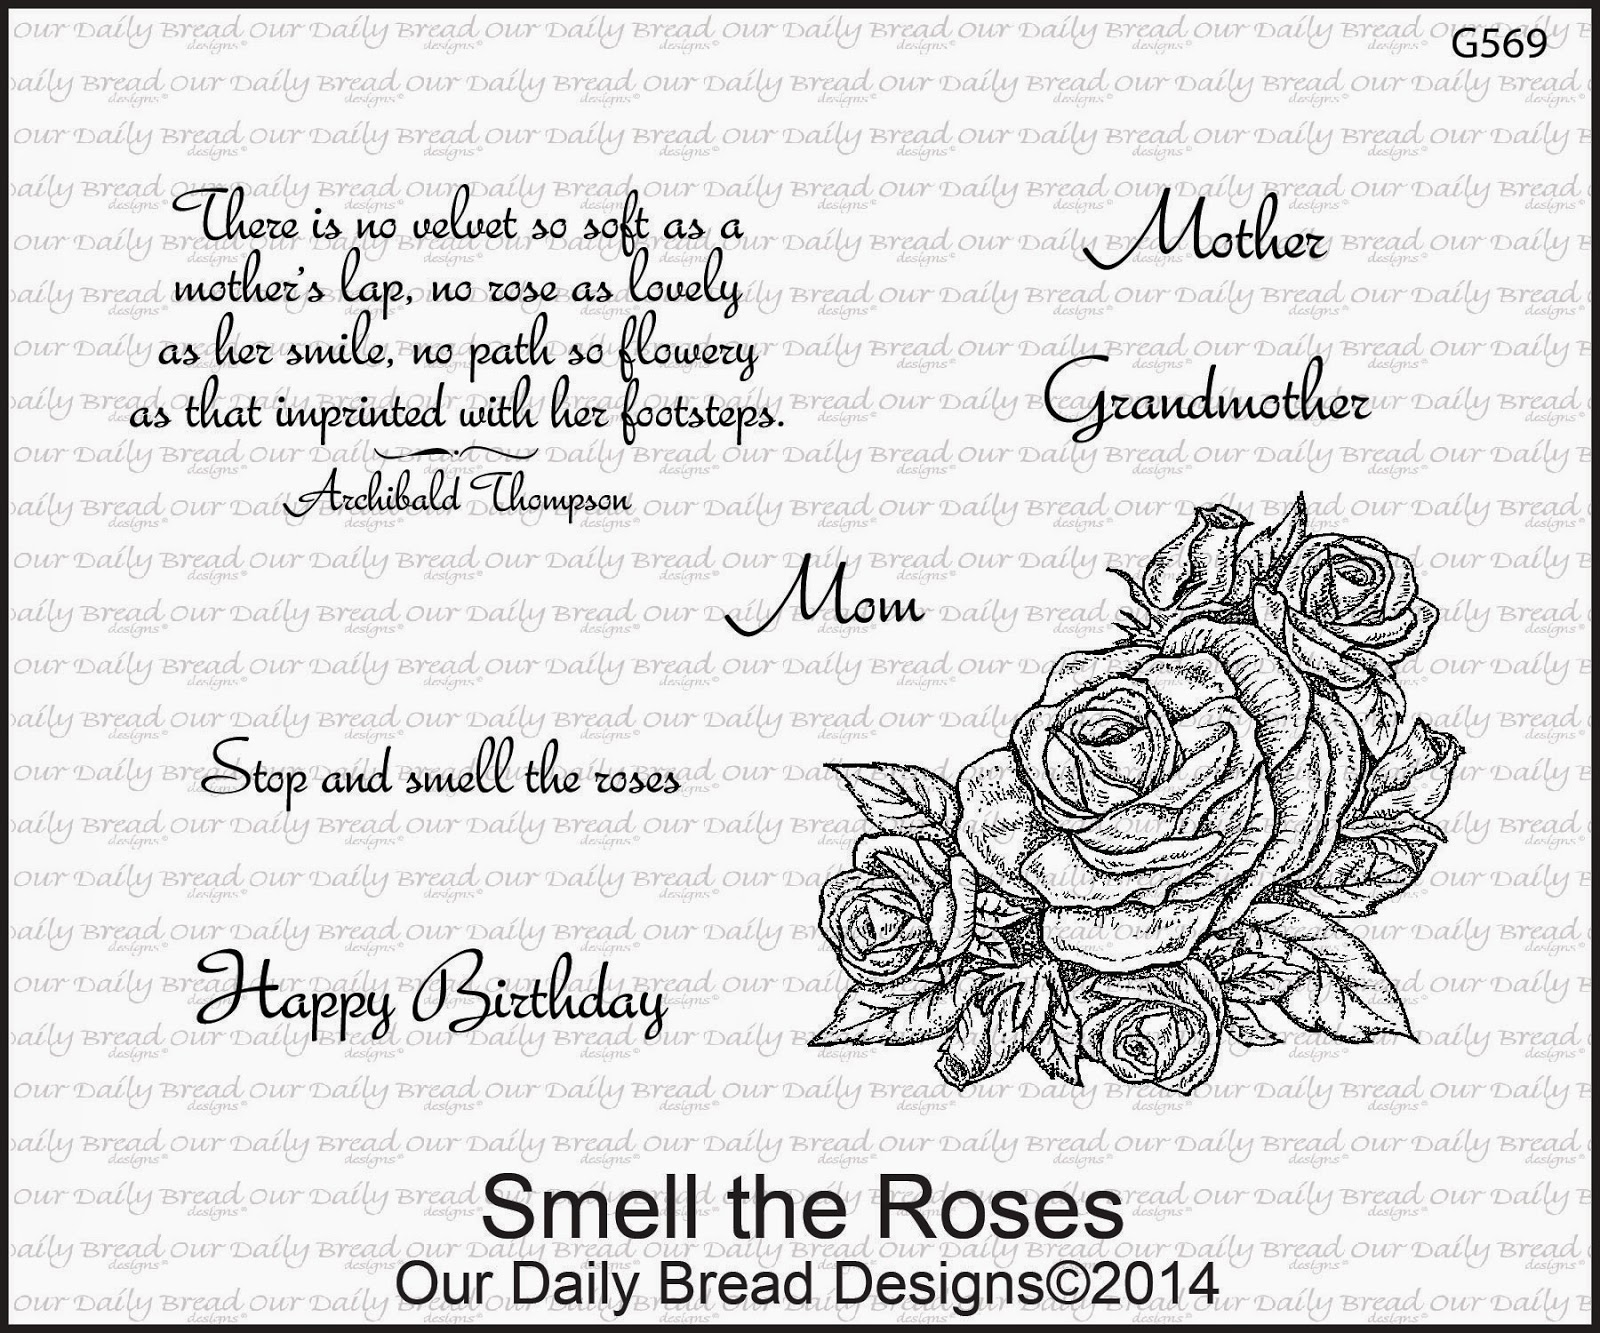 Stamps - Our Daily Bread Smell the Roses